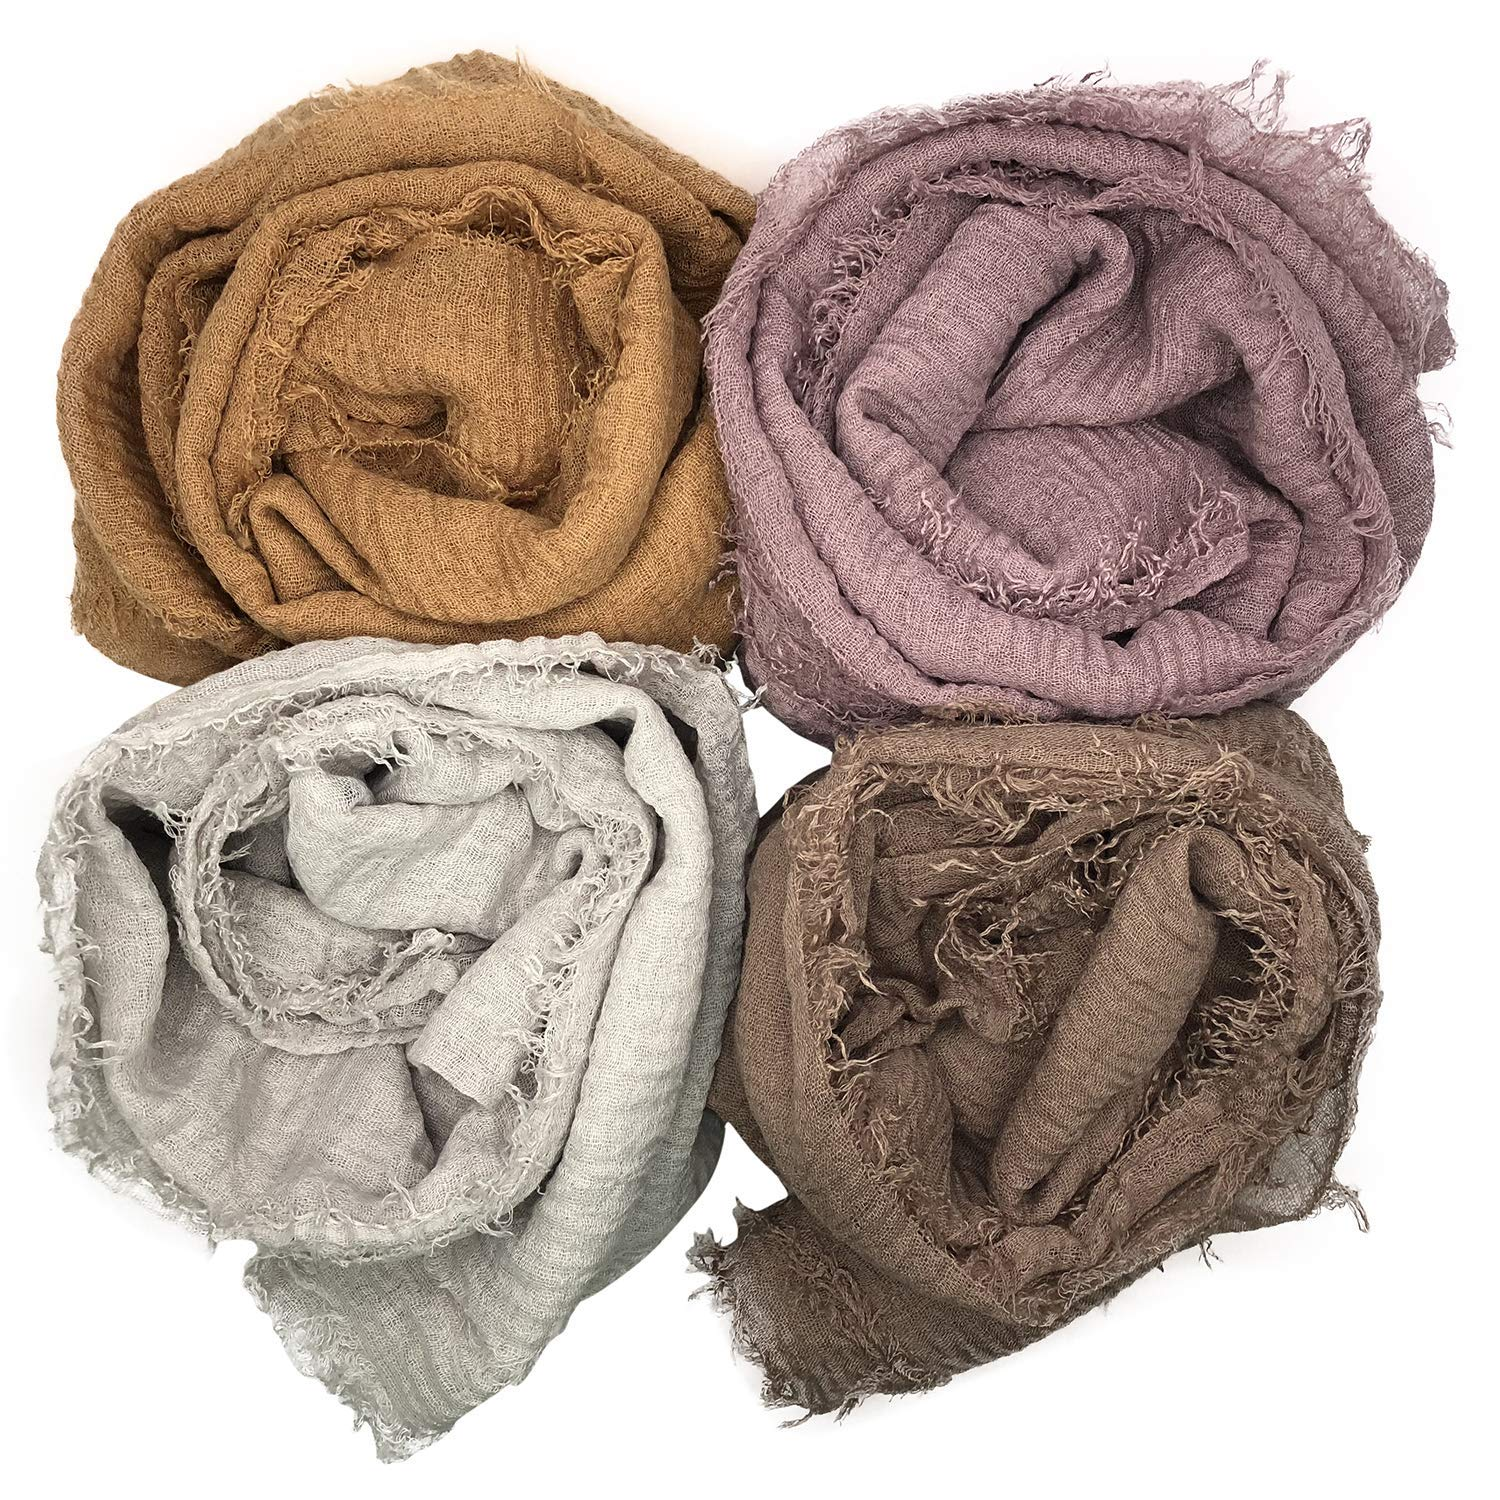 MANSHU 4PCS Women Soft Cotton Hemp Scarf Shawl Long Scarf, Scarf and Wrap, Big Head Scarf.